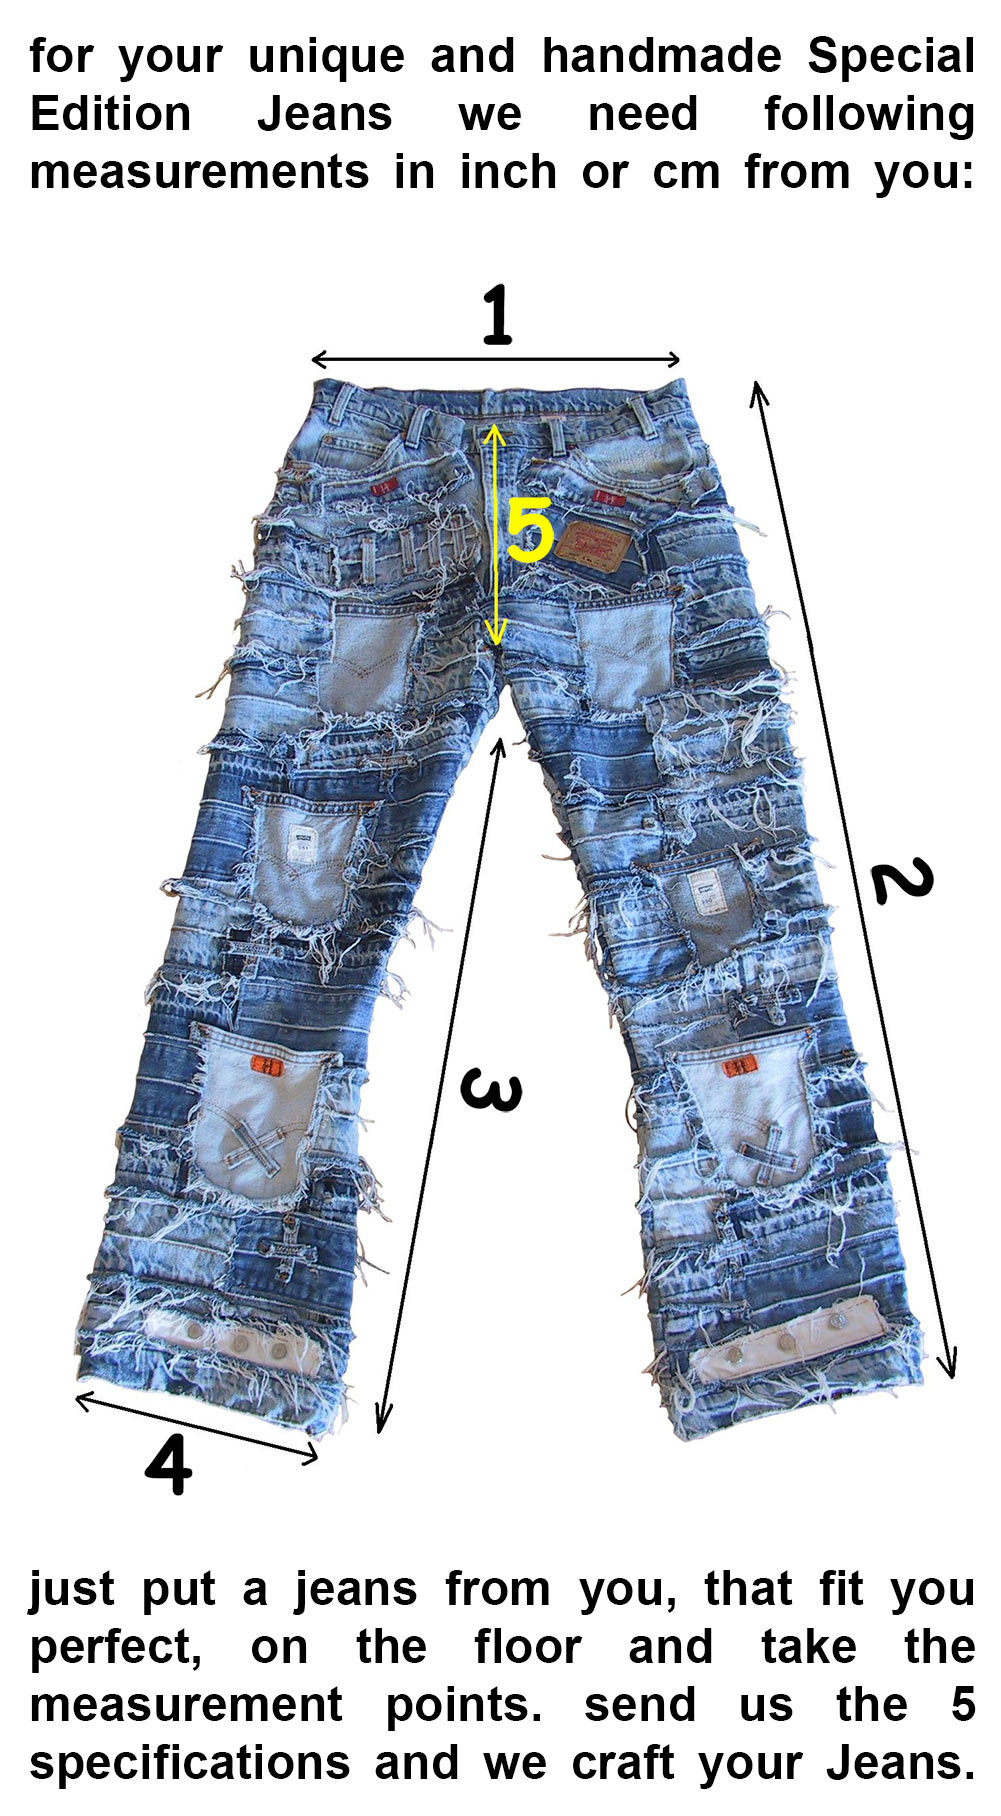 Special edition jeans measurements